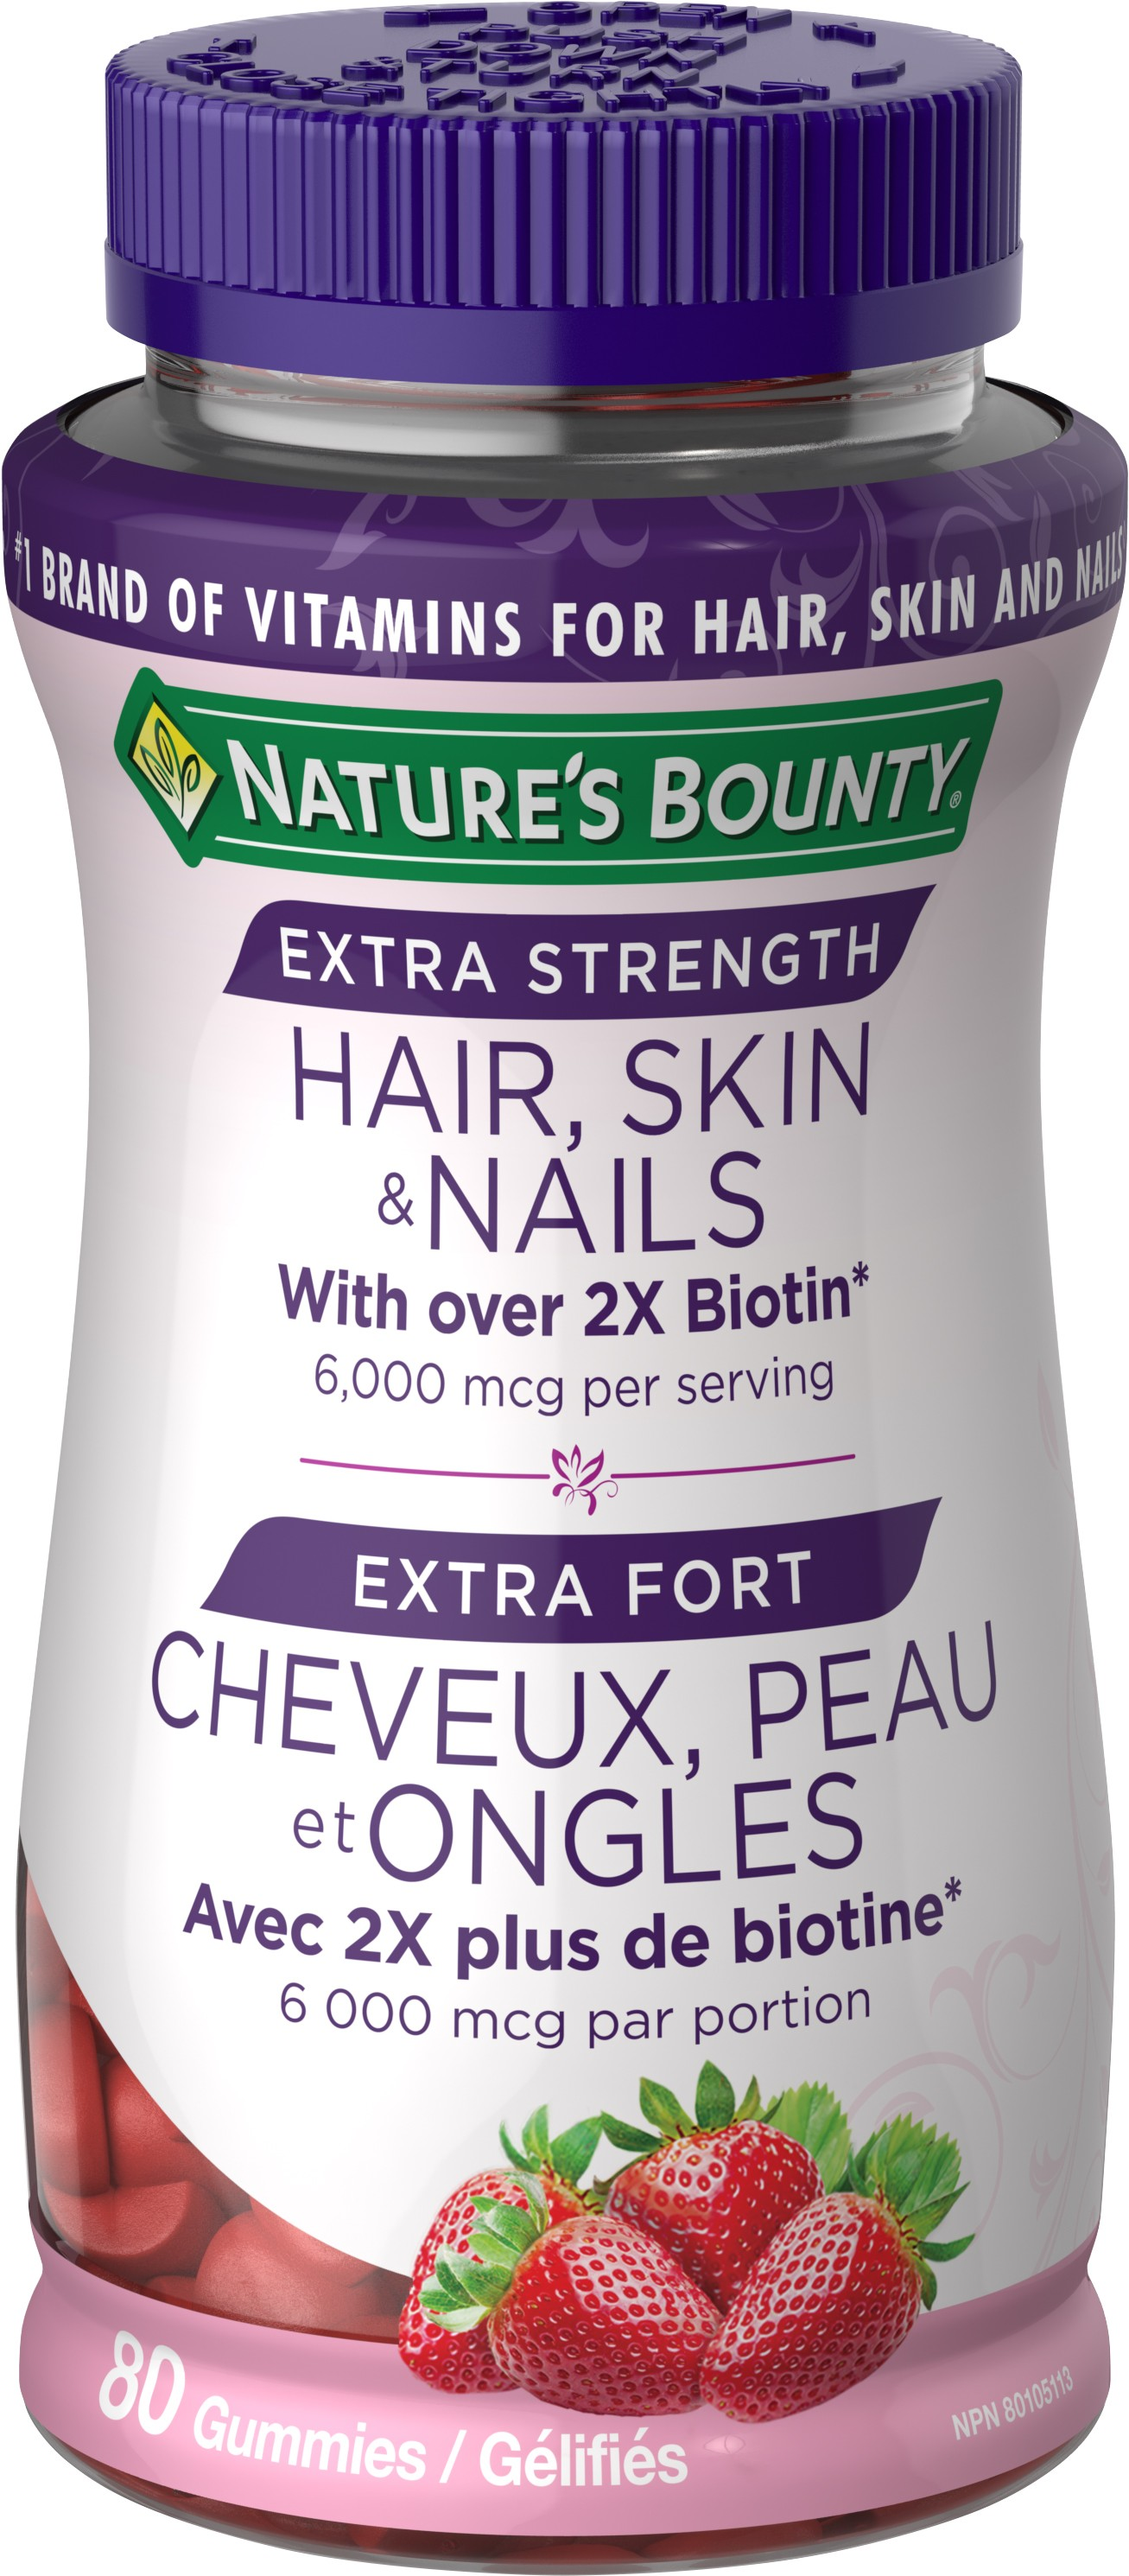 Extra Strength Hair, Skin & Nails Gummies